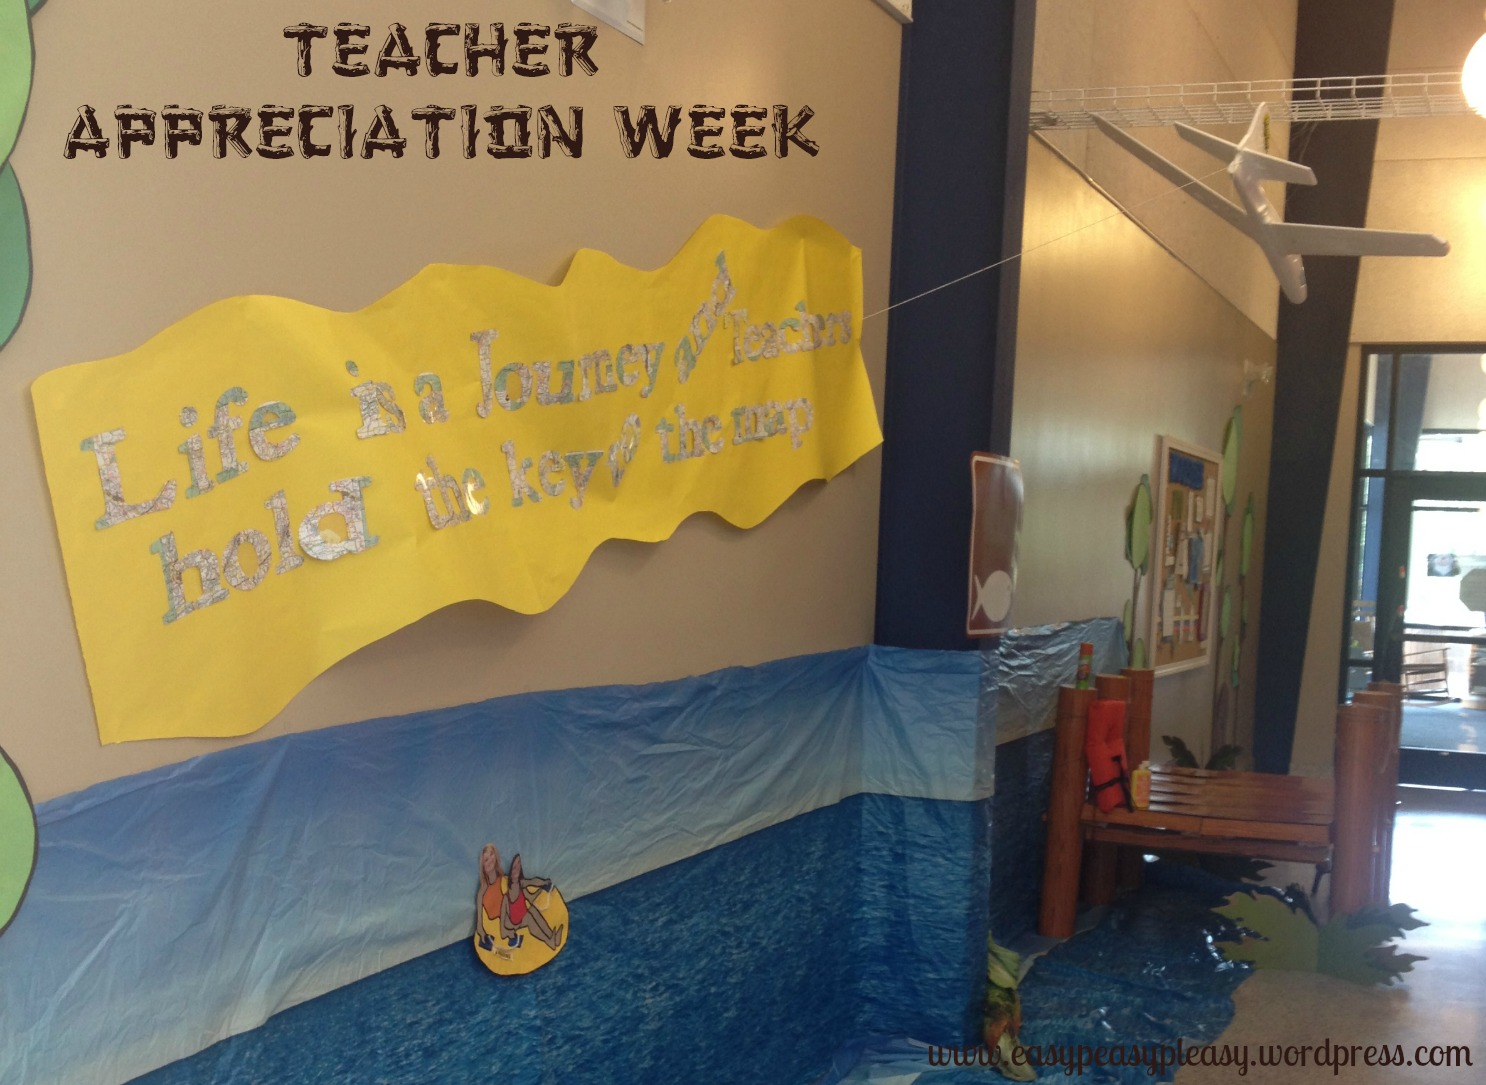 Teacher Appreciation Week Camping Theme Life is a Journey and Teachers hold the key to the map